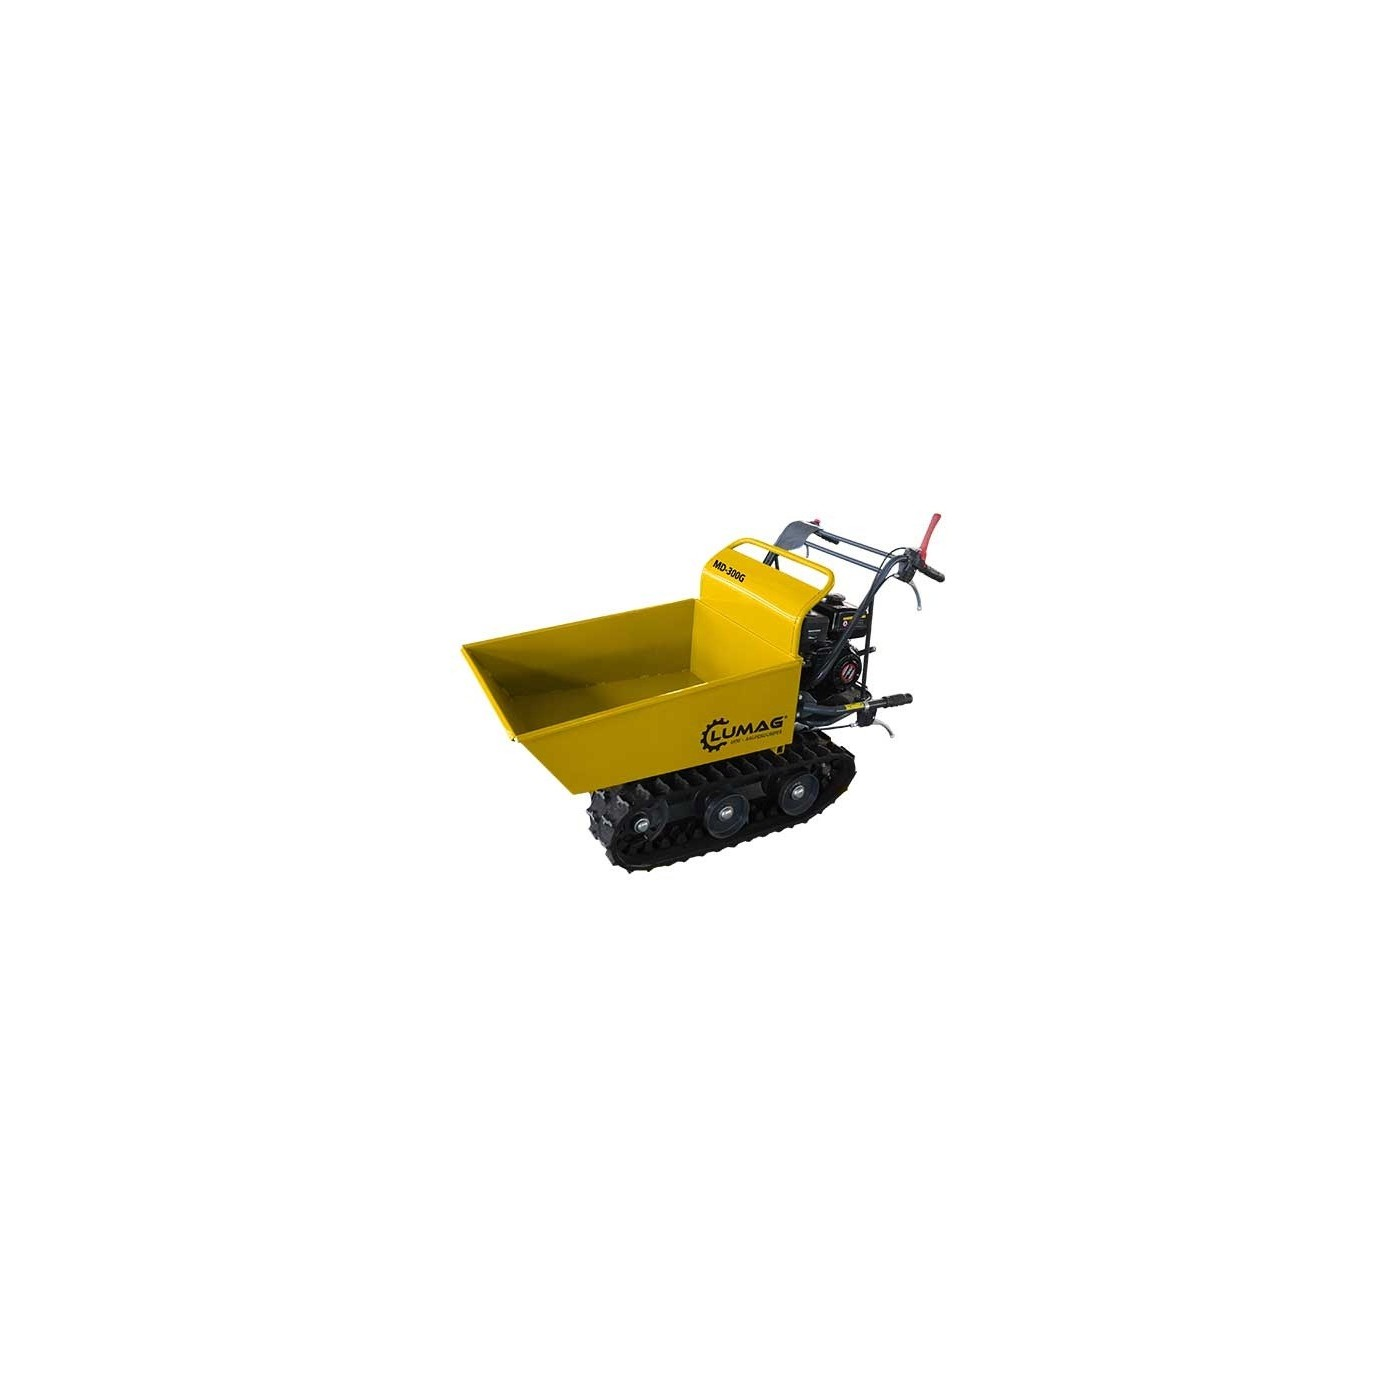 Parts for our Garden and Construction Equipment